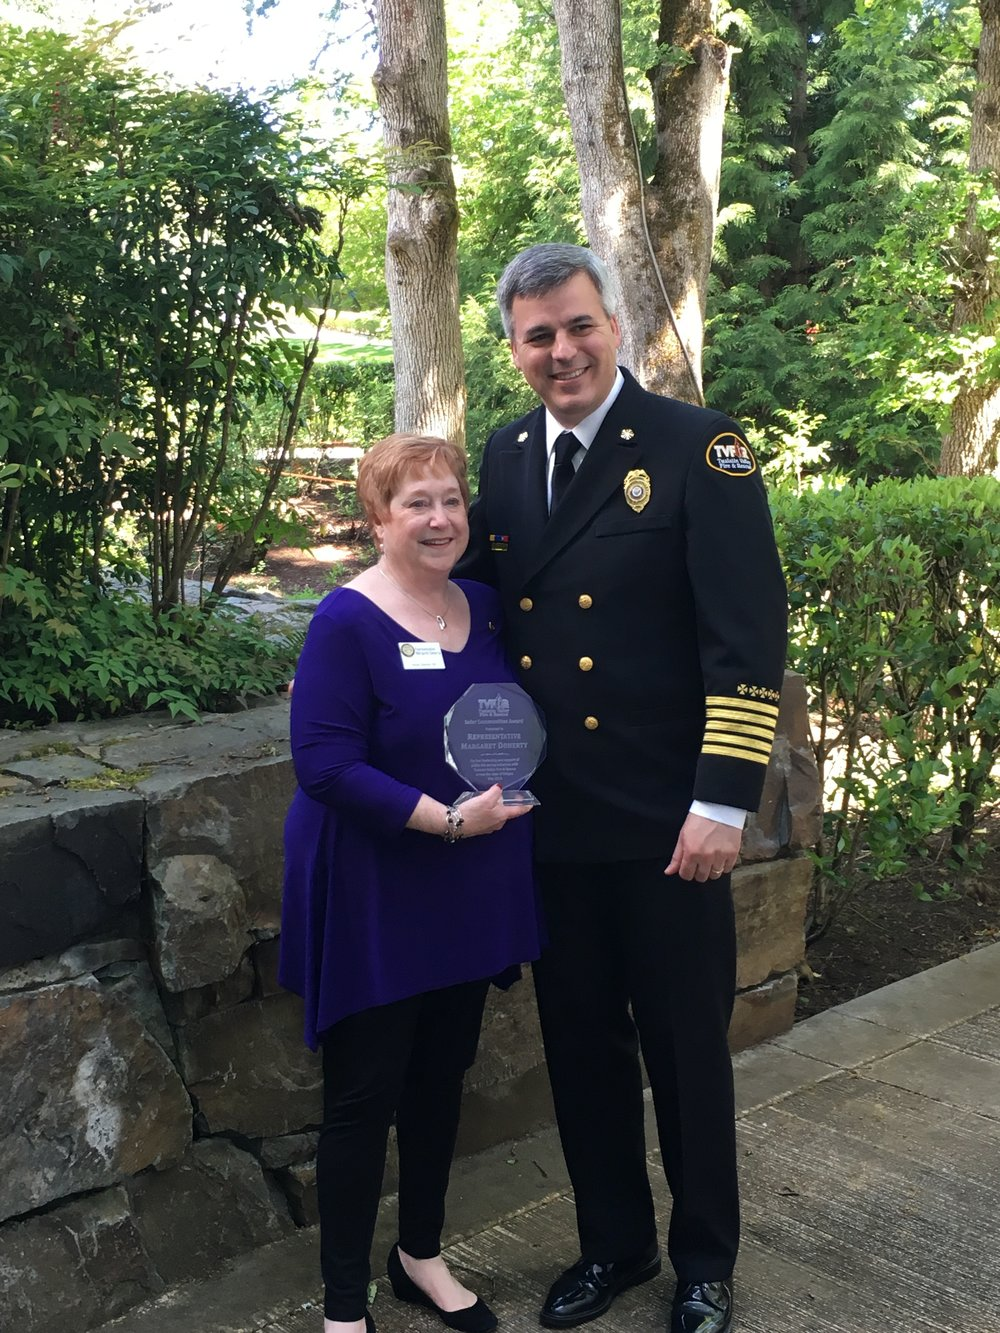 One of my favorite pictures of MD. She's standing next to Tualatin Valley Fire & Rescue Chief Mike Duyck receiving an award for her work in the legislature.